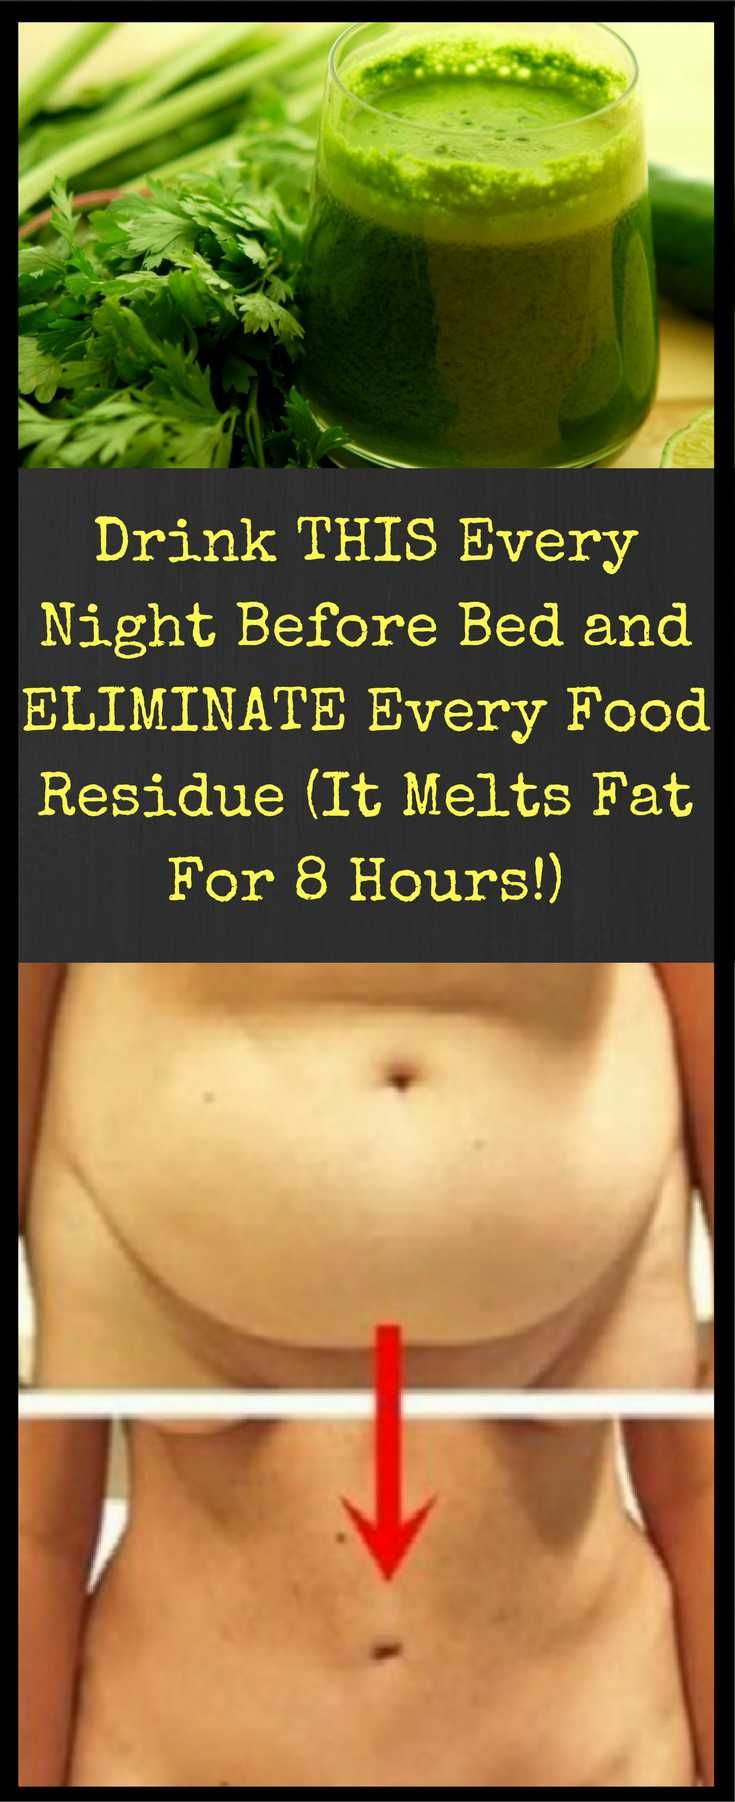 Drink This Every Night Before Bed and Remove Every Food Residue and Also Melt Fat For 8 Hours !!!!zz